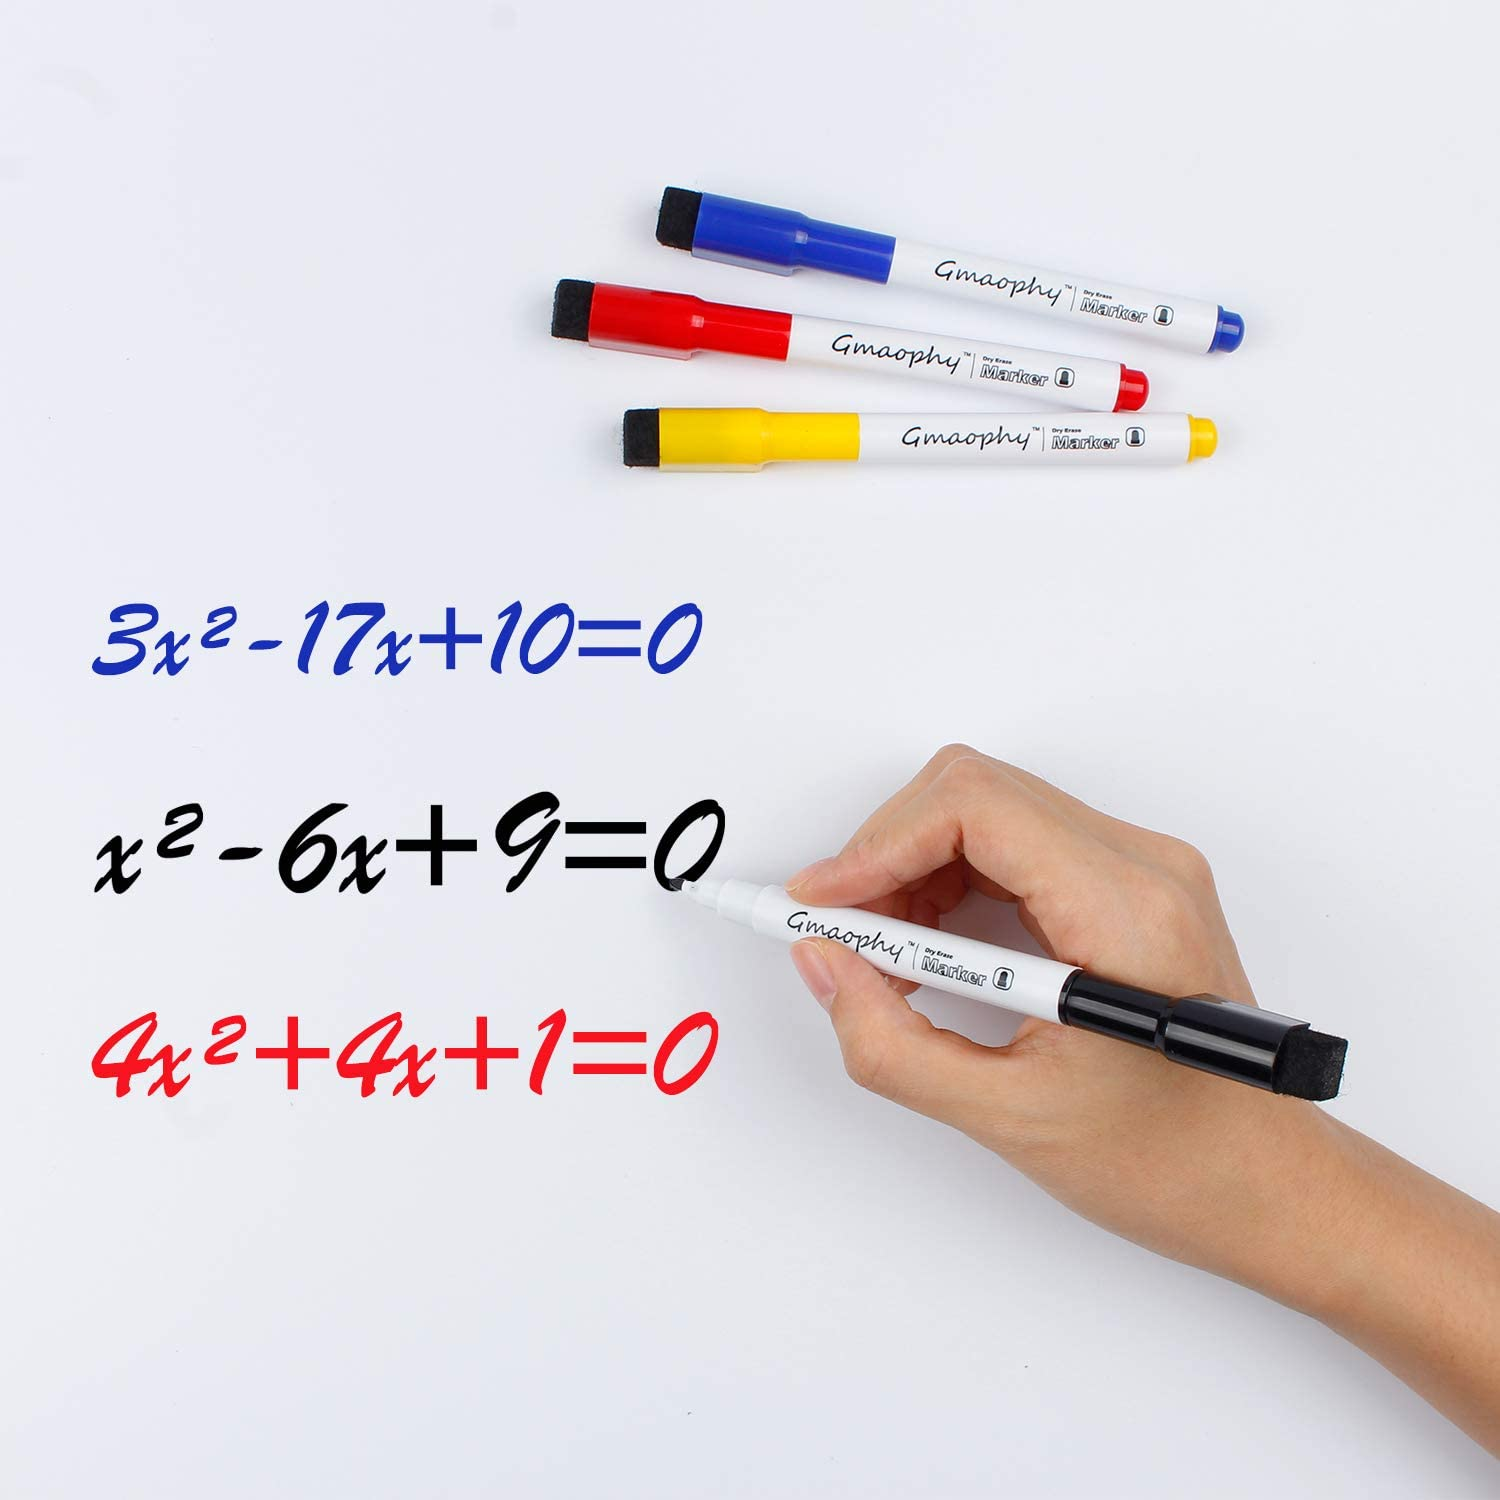 Magnetic Dry Erase Markers - 14 Pcs 7 Color Whiteboard Markers with Eraser Cap, Low Odor Dry Erase Markers for Glass/Whiteboard/Porcelain/Plastic/School/Office : Office Products